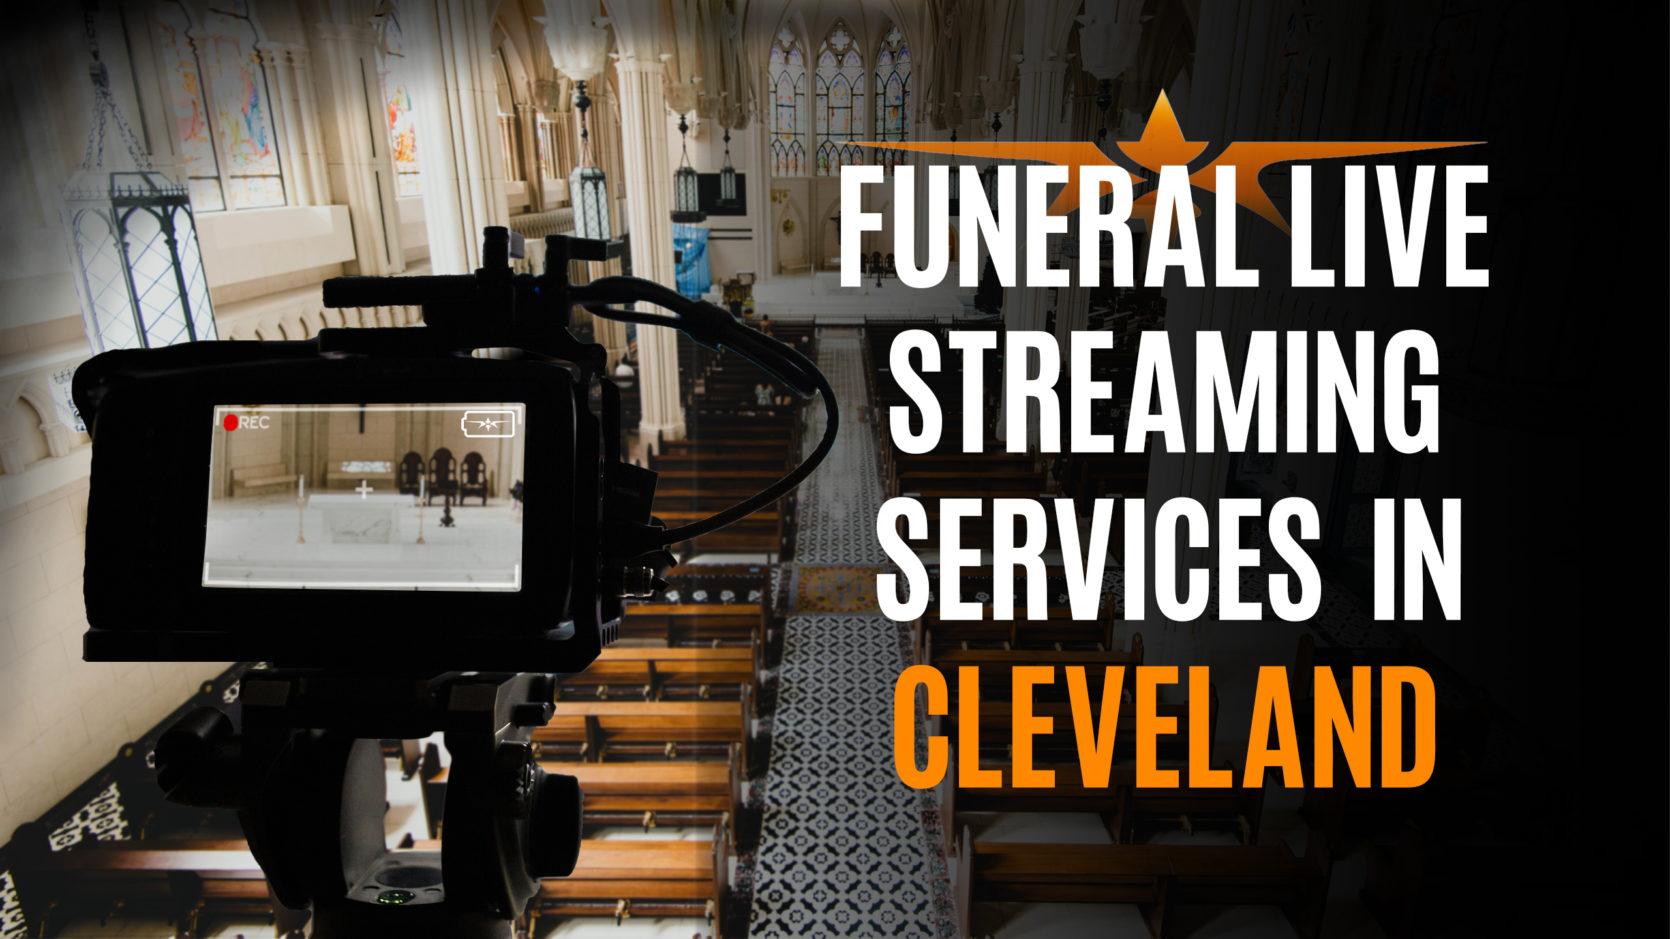 Funeral Live Streaming Services in Cleveland